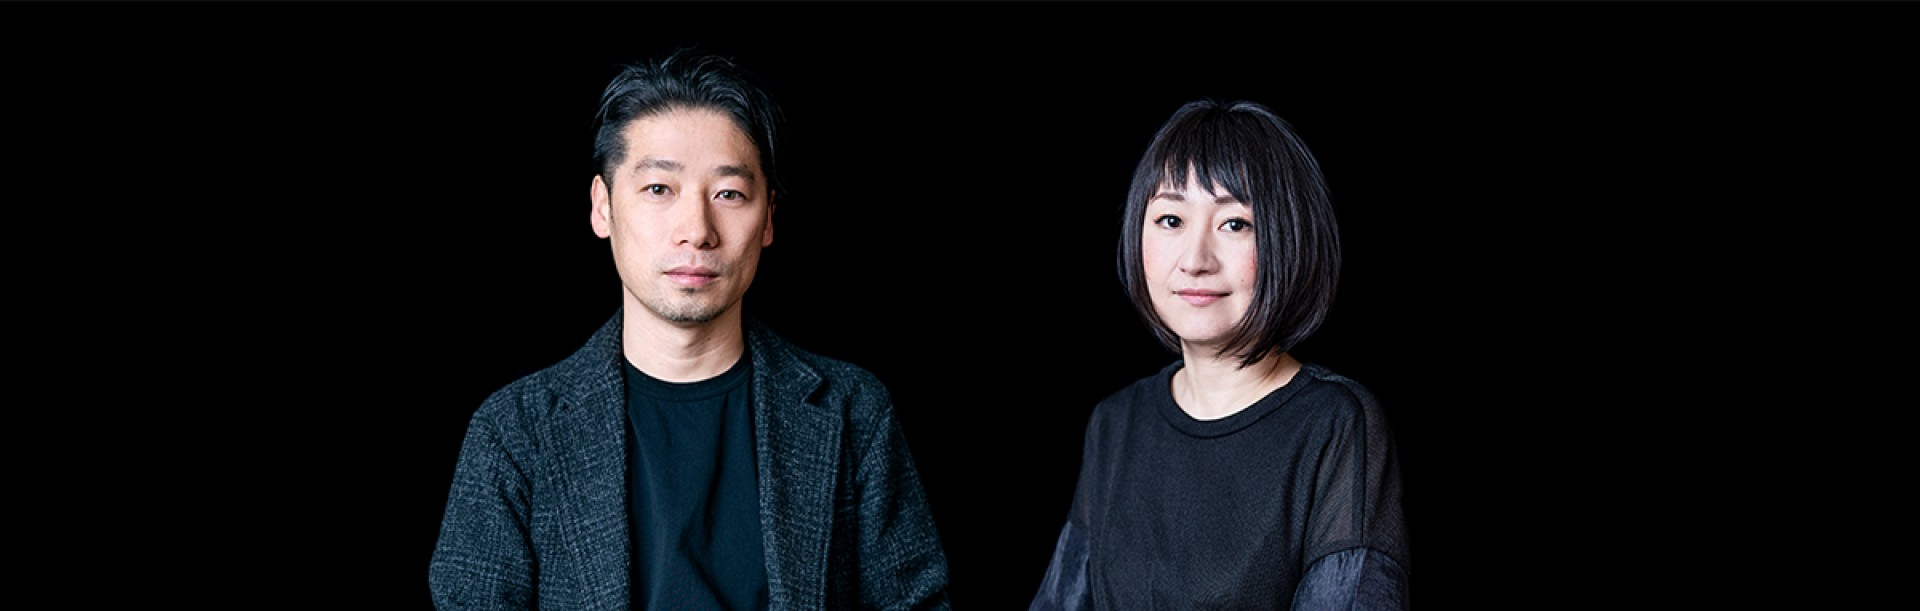 Exclusive Interview With Japanese Design Studio Suppose Design